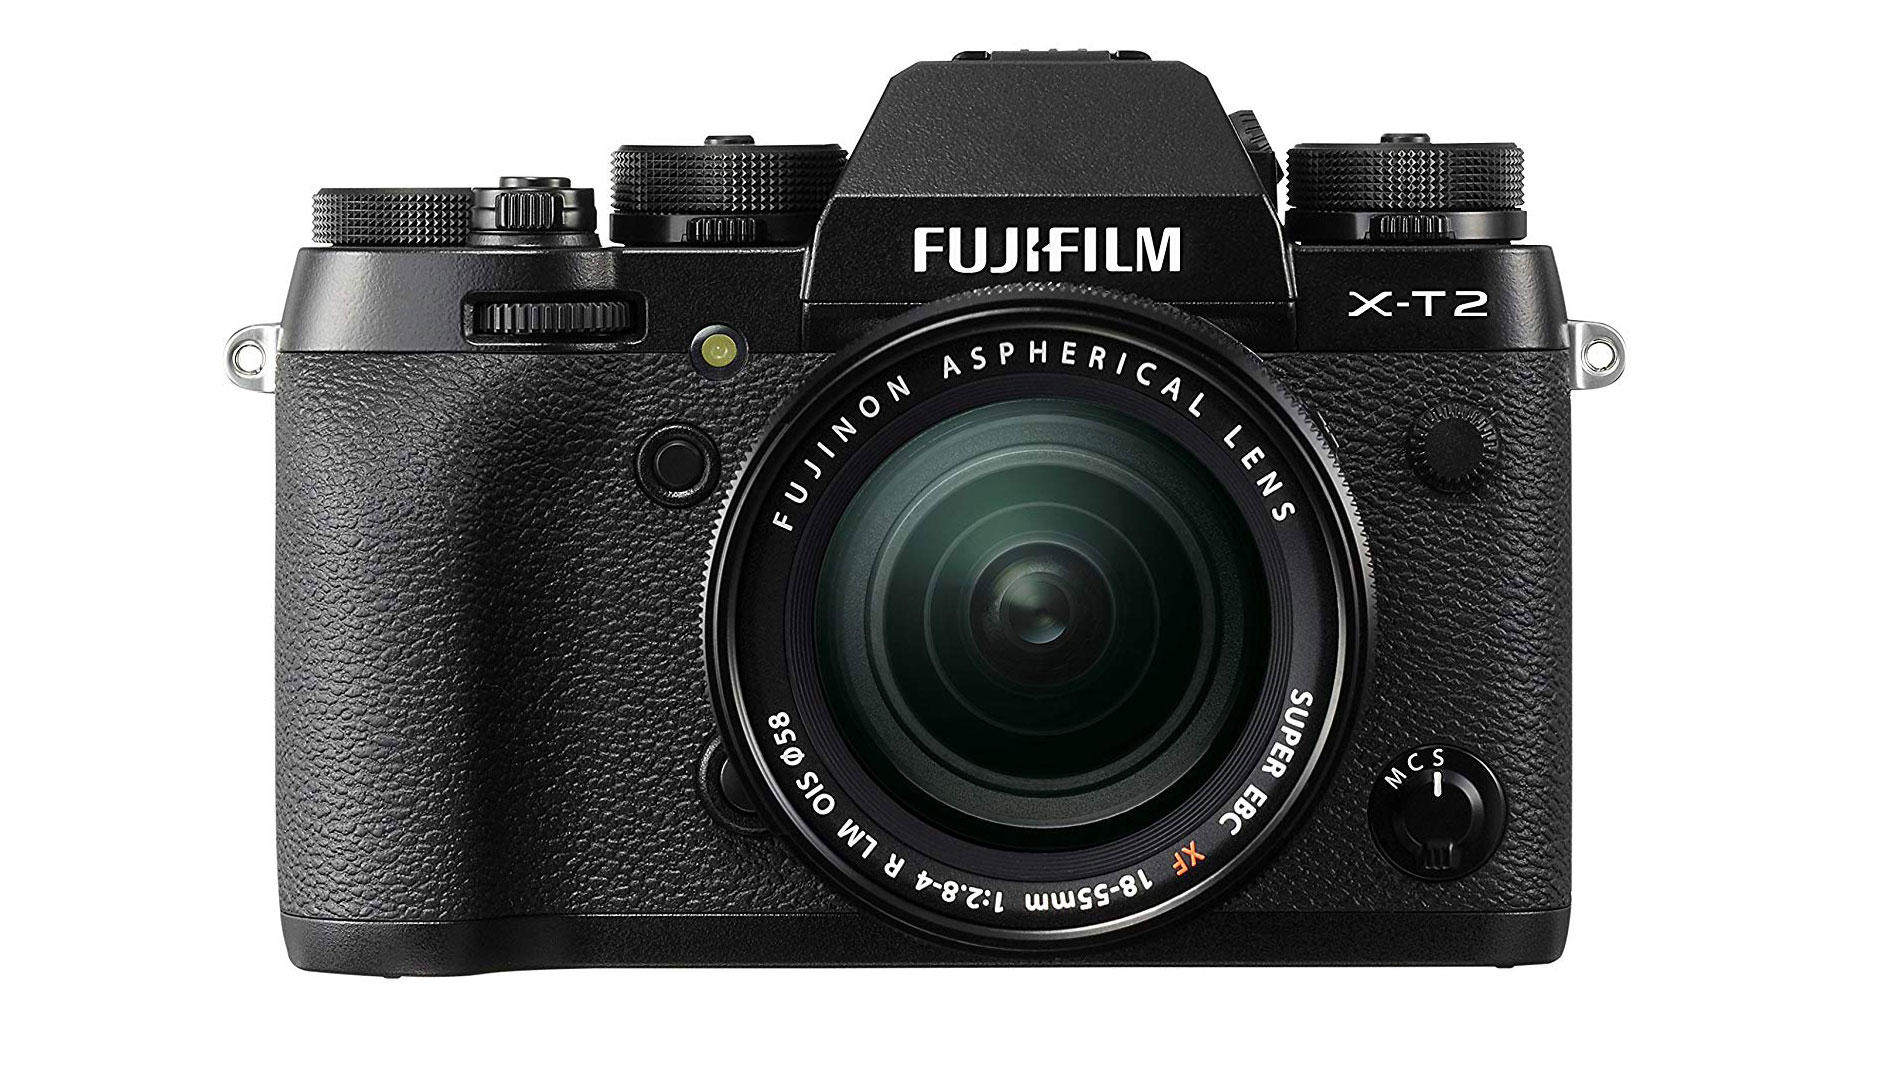 Save $800 on a Fujifilm X-T2, plus free accessories! | Creative Bloq